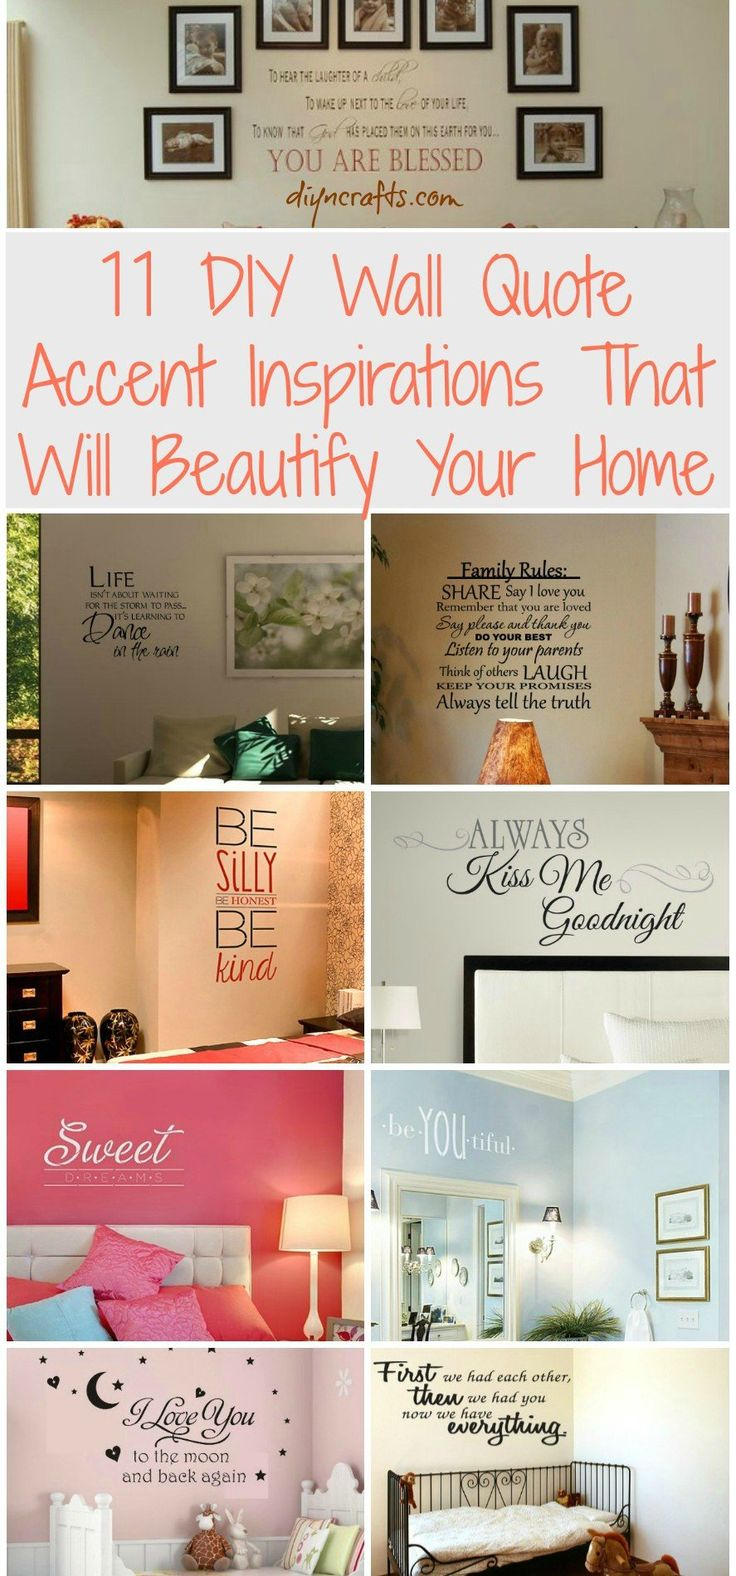 11 DIY Wall Quote Accent Inspirations That Will Beautify Your Home – DIY ...